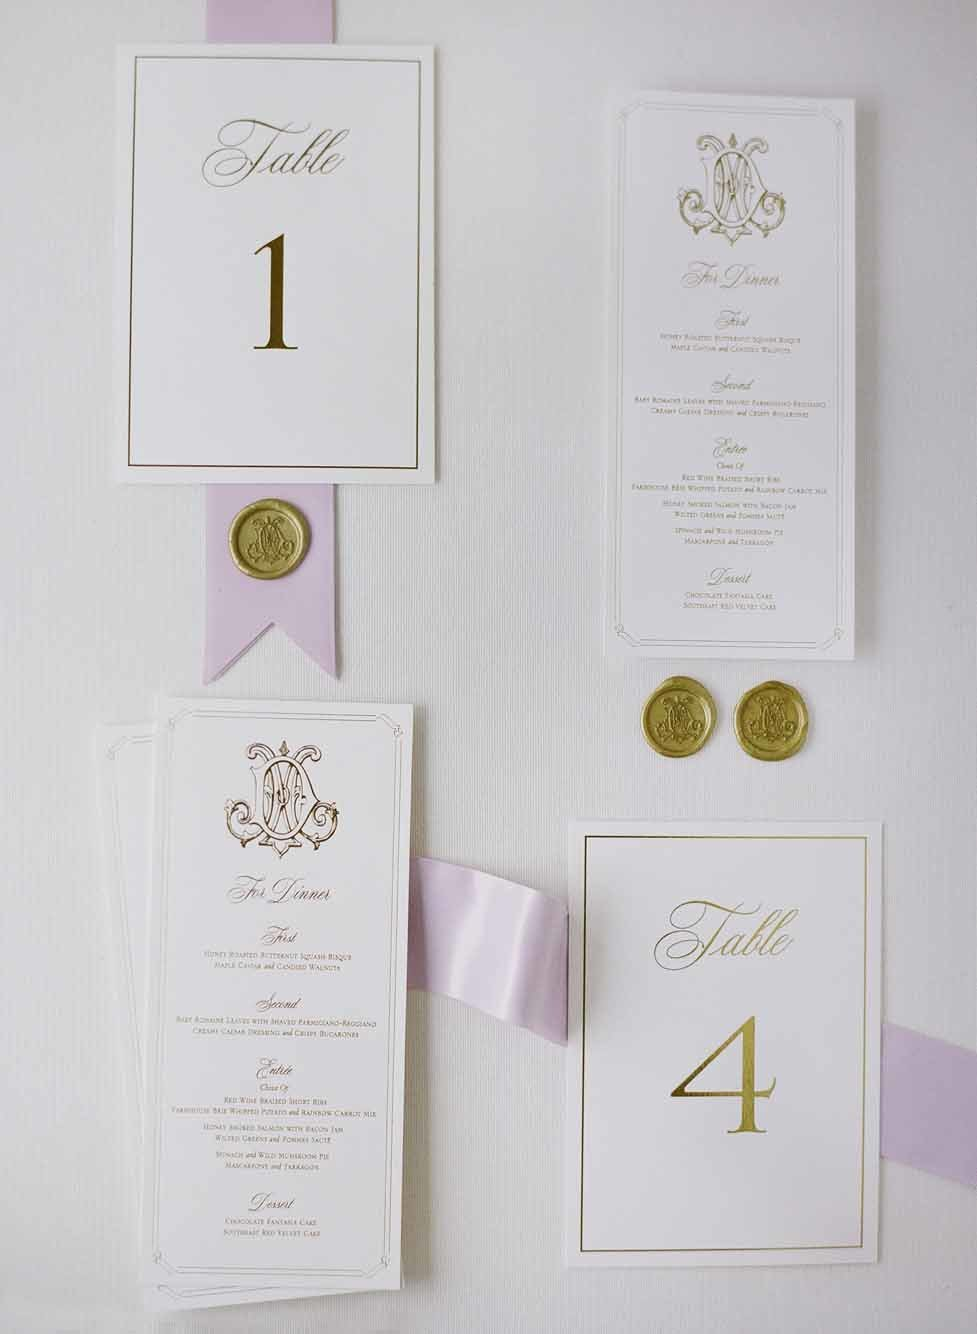 Beautiful wedding invitation suite flat-lay  with gold and purple accents.